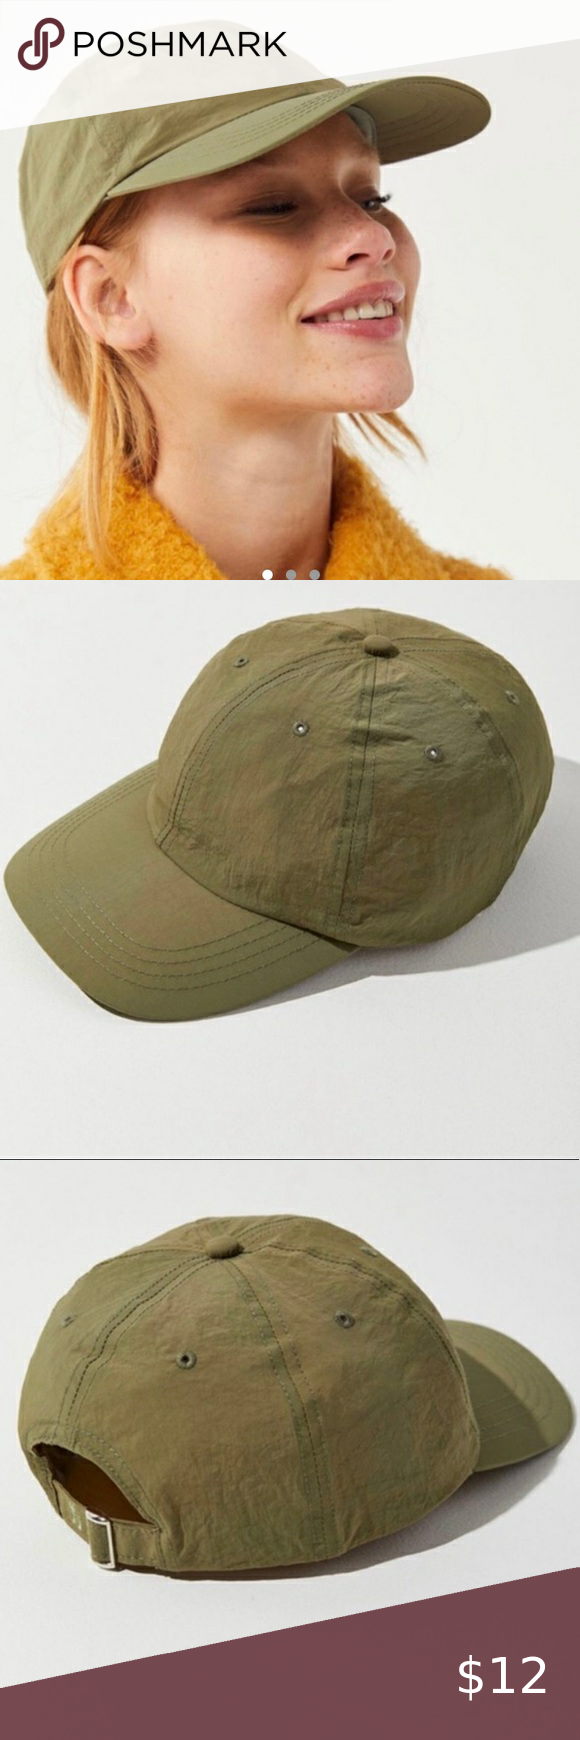 Urban Outfitters Green Baseball Cap In 2020 Green Baseball Cap Urban Outfitters Accessories Urban Outfitters